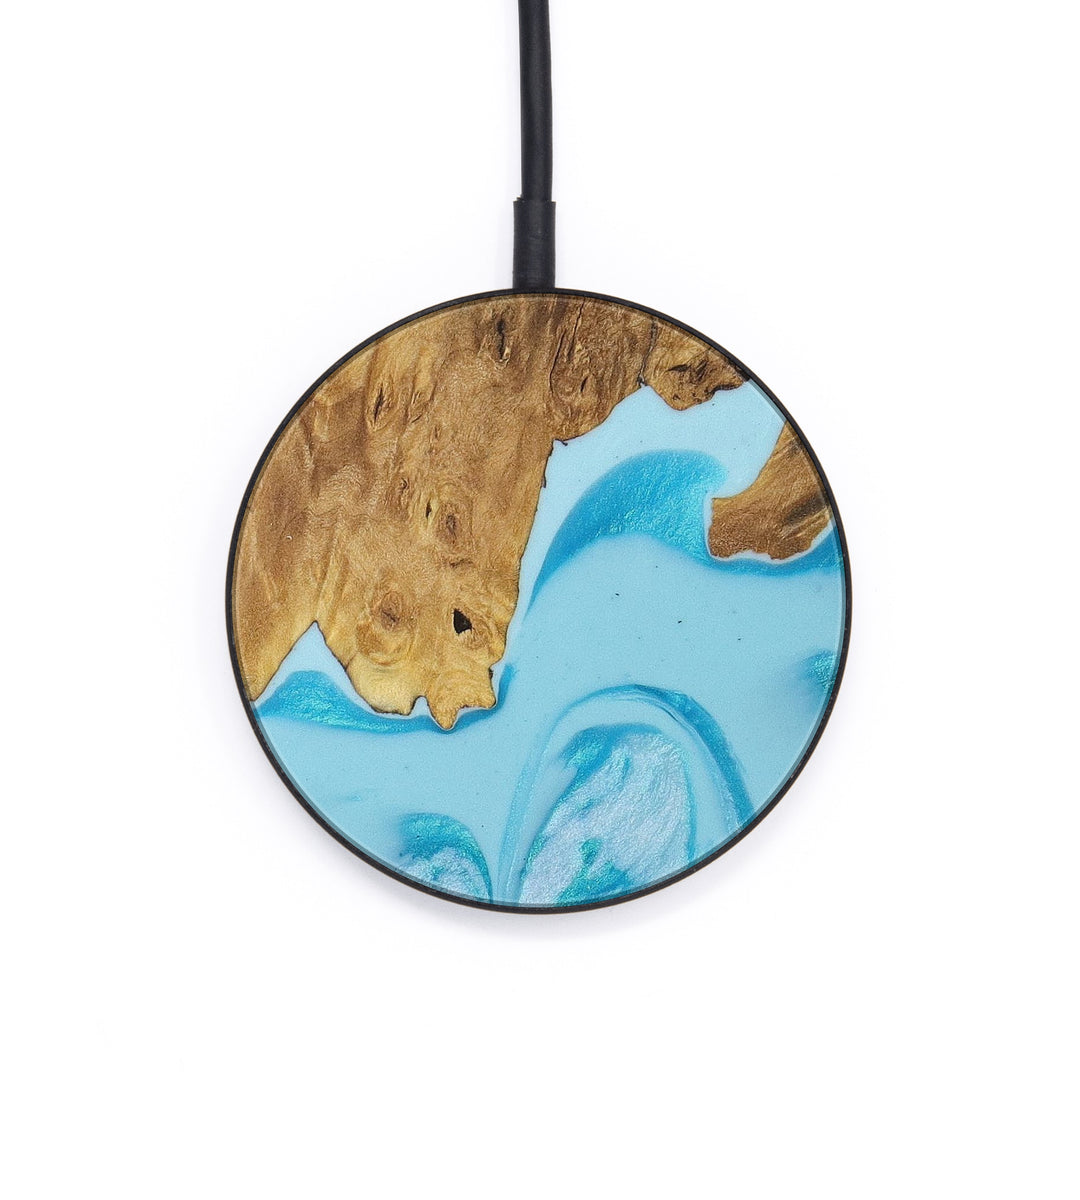 Circle Wood+Resin Wireless Charger - Karole (Light Blue, 404455)